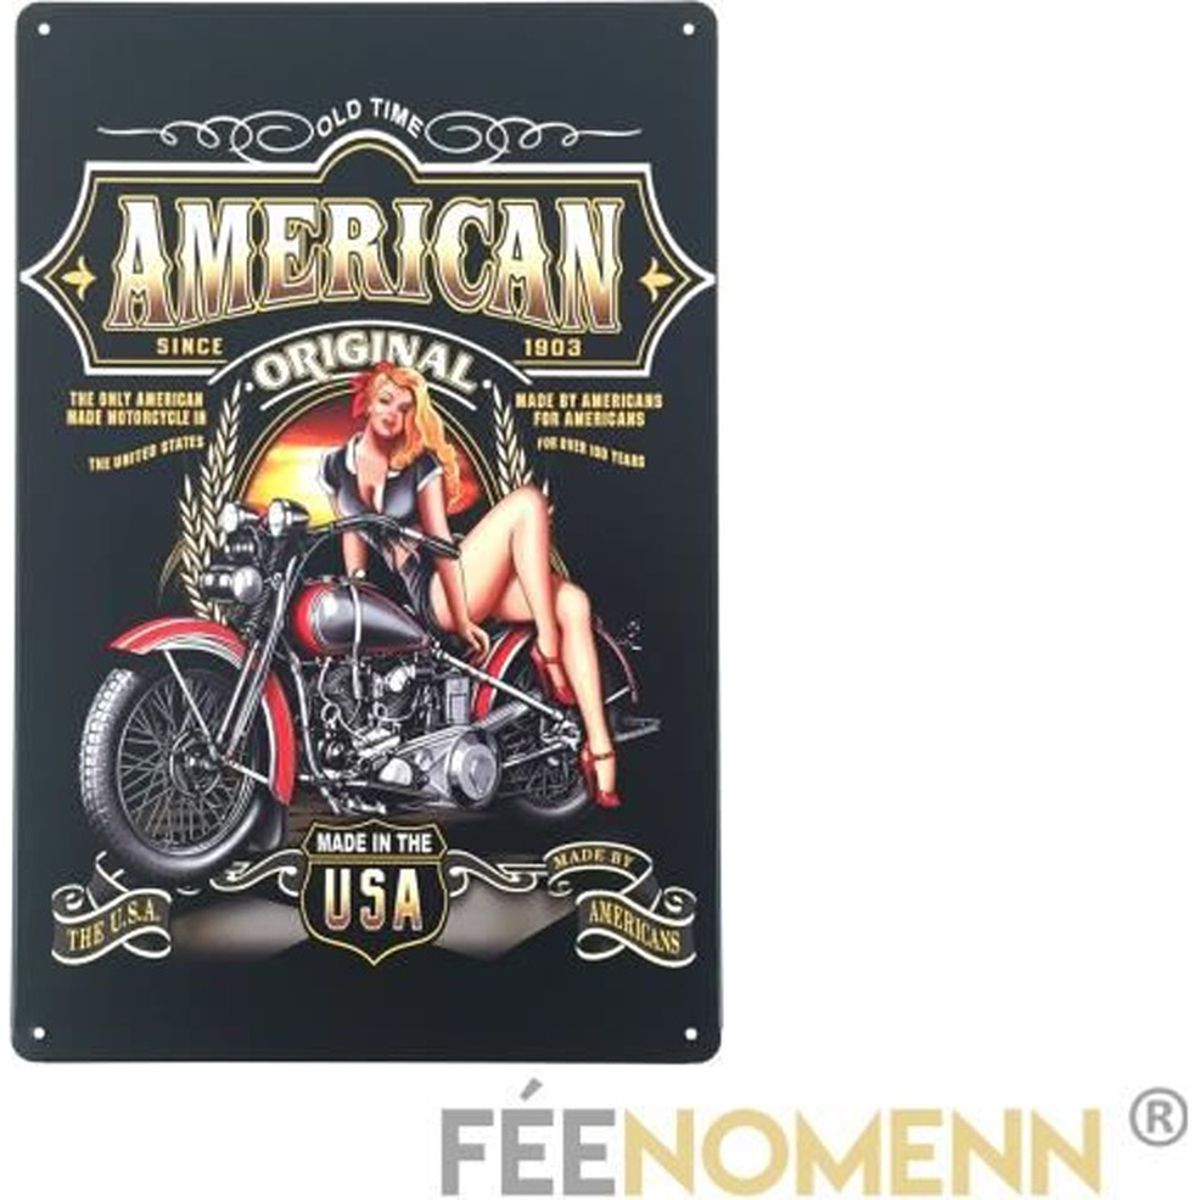 plaque deco en metal harley achat vente plaque deco en metal harley pas cher cdiscount. Black Bedroom Furniture Sets. Home Design Ideas